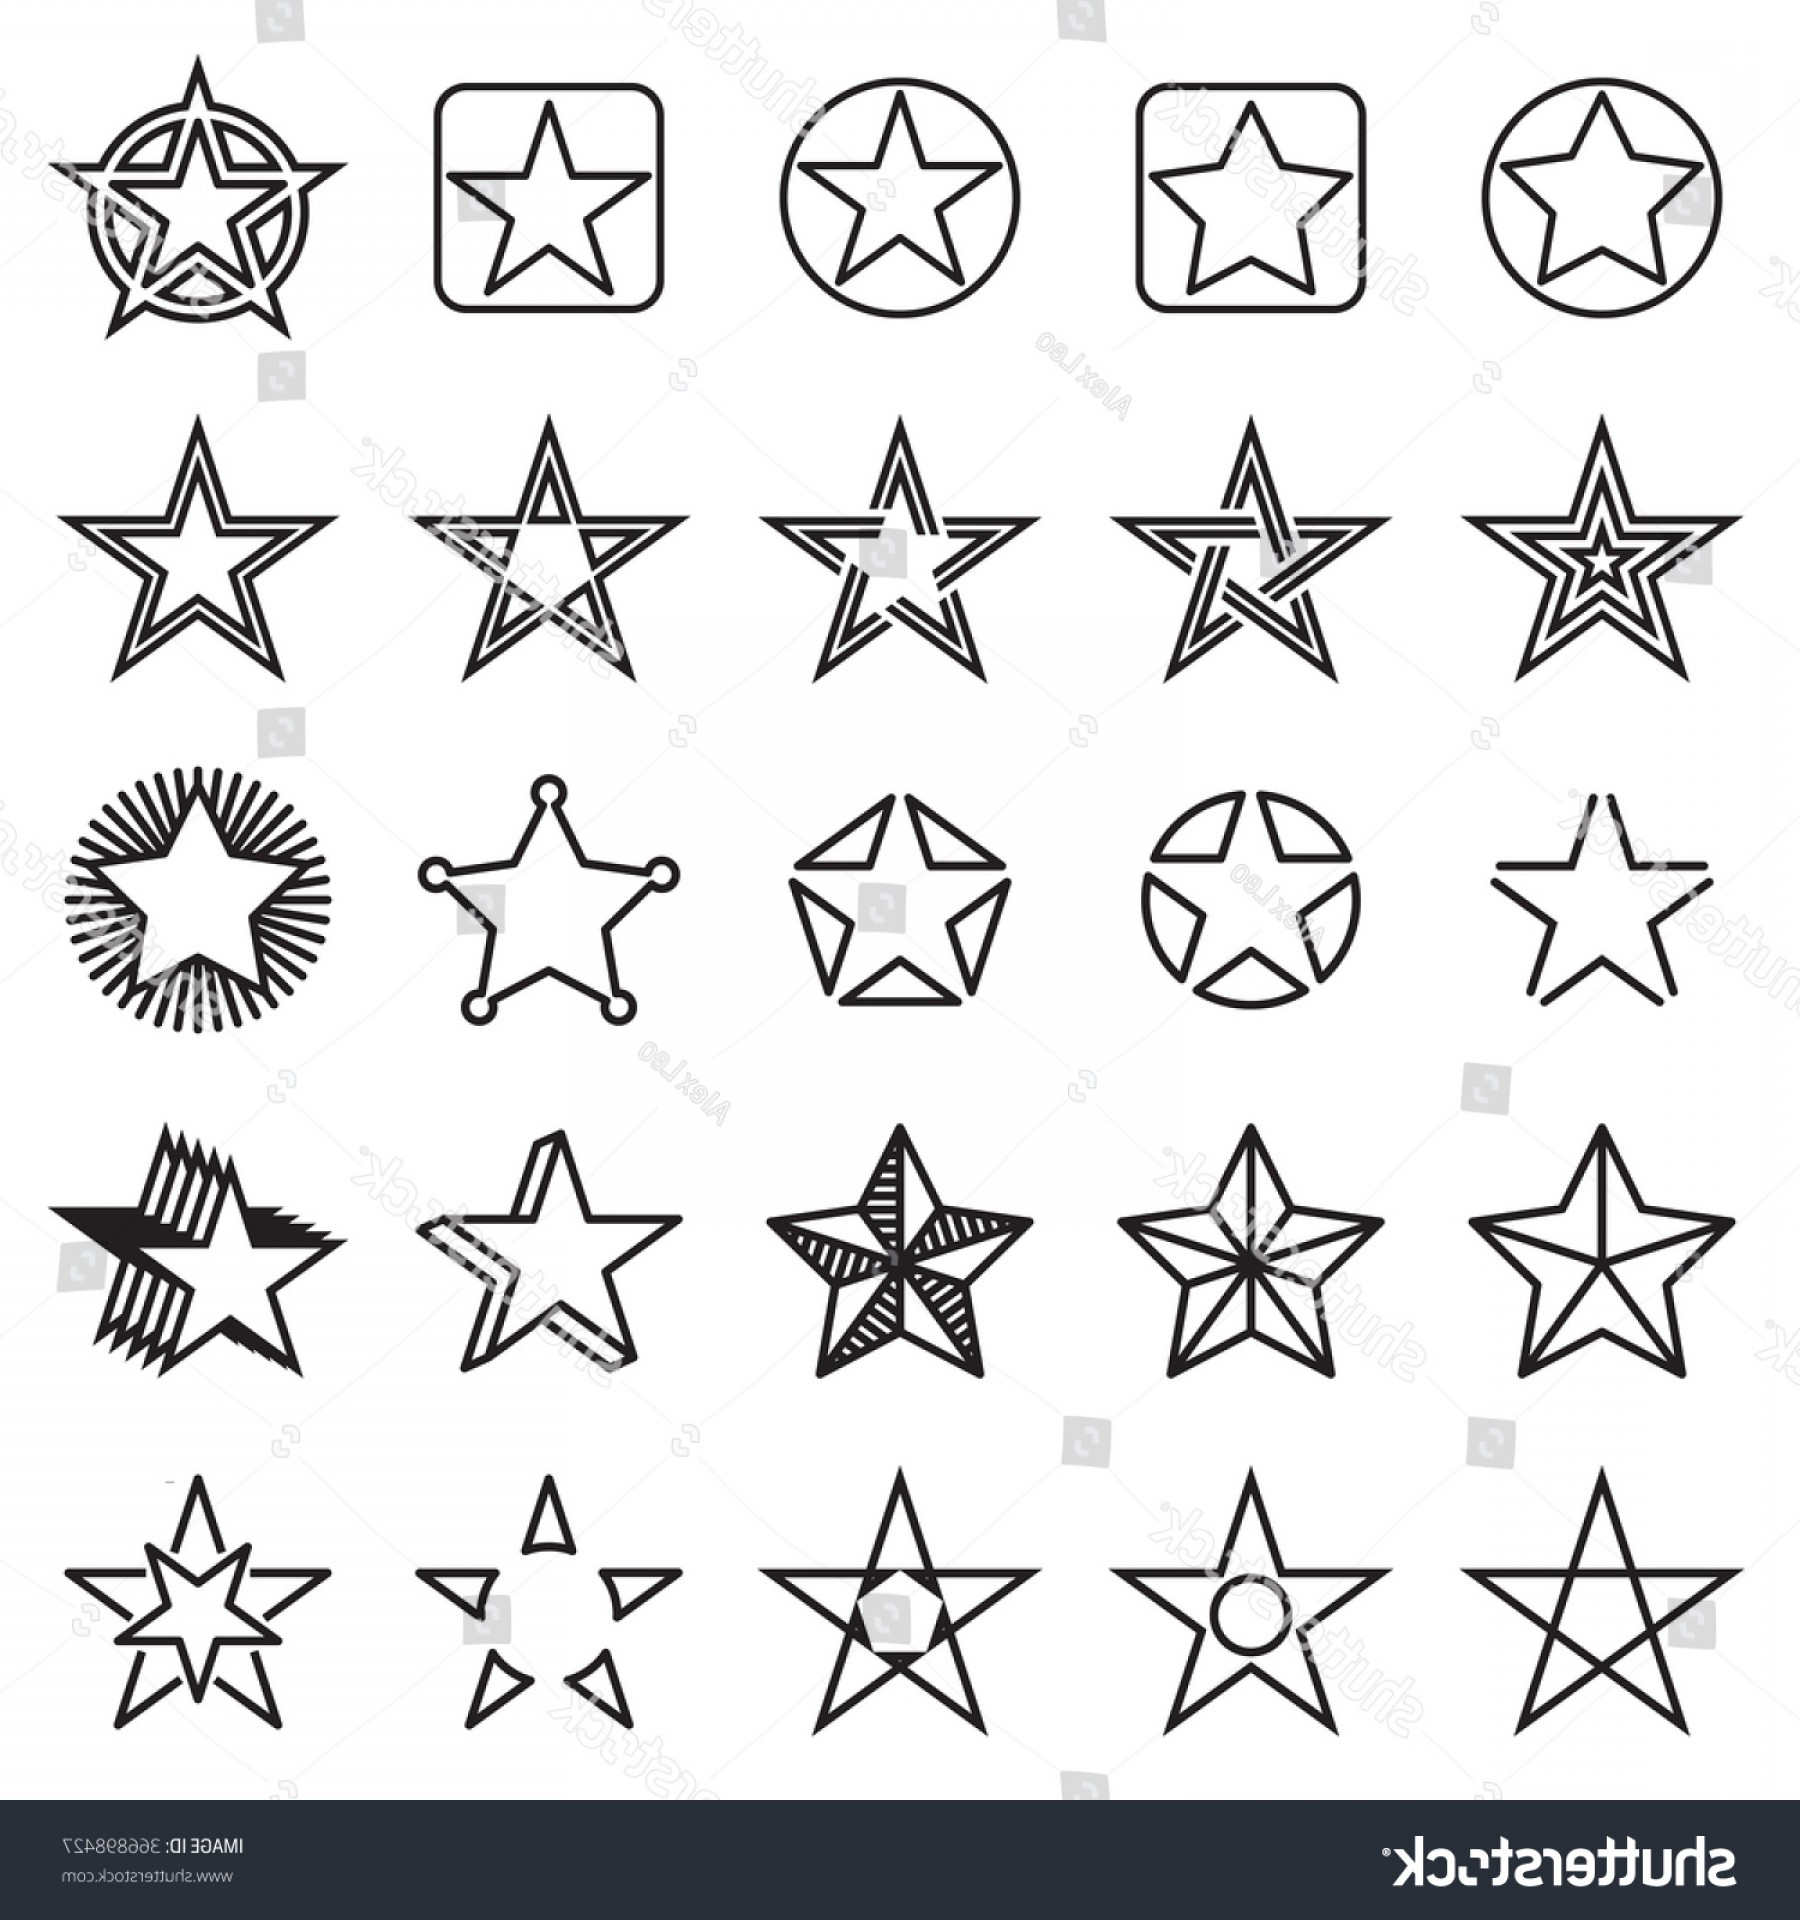 Starburst Icon Vector: Fivepointed Star Icons Collection Linear